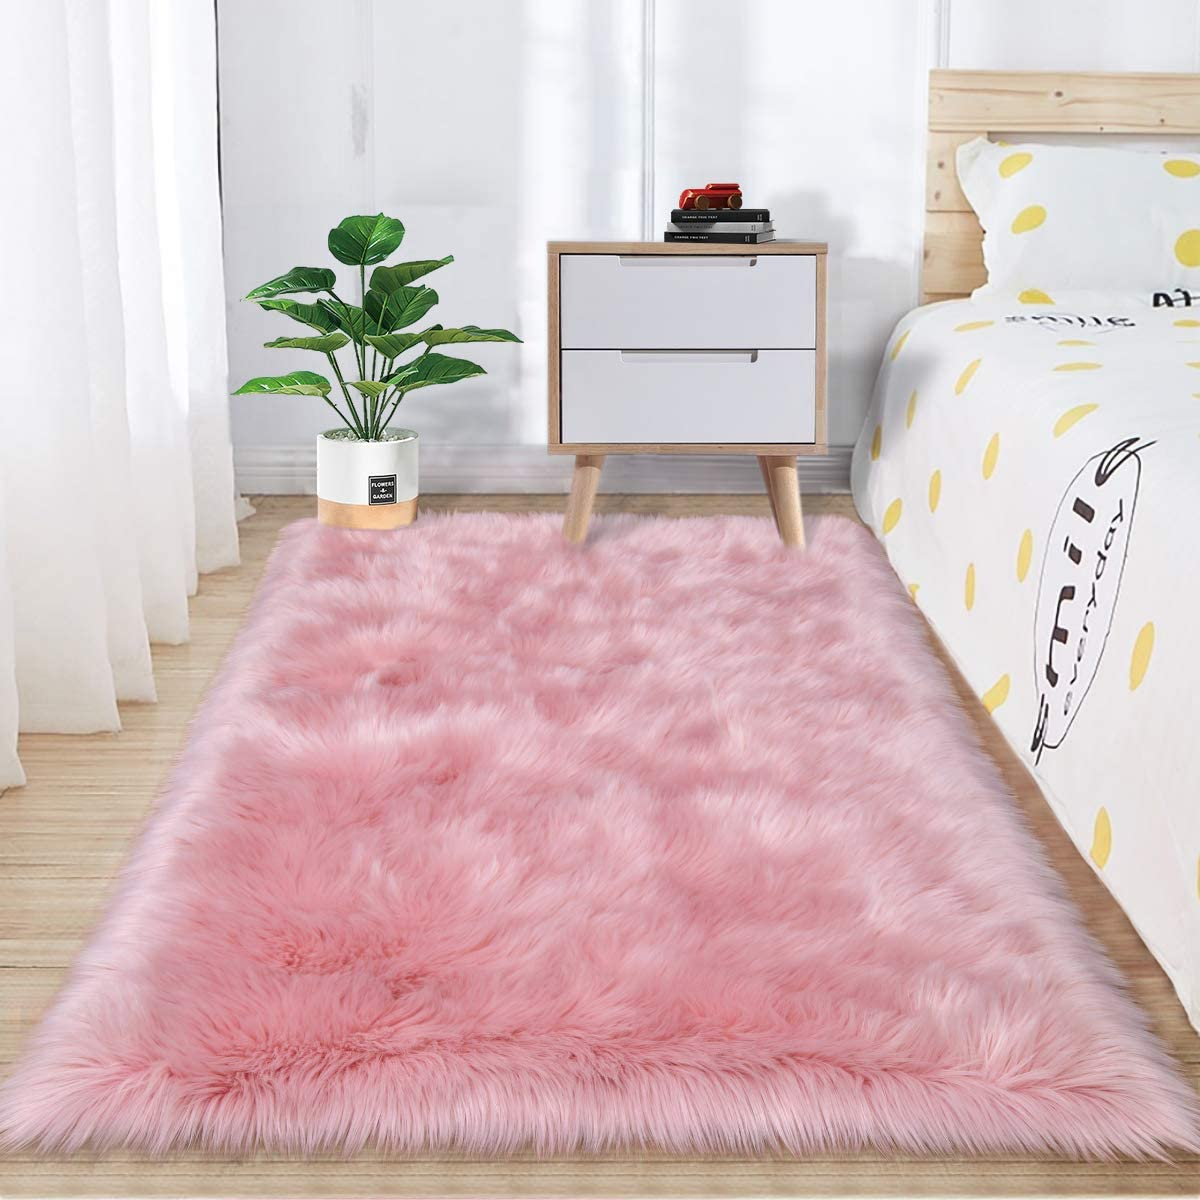 Zareas Super Soft Fluffy Bedroom Rugs, Luxurious Plush Faux Fur Sheepskin Area Rugs for Living Room Indoor Floor Couch Chair Vanity Home Decor Nursery Kids Girls Shaggy Carpet, Pink (3 x 5 Feet)